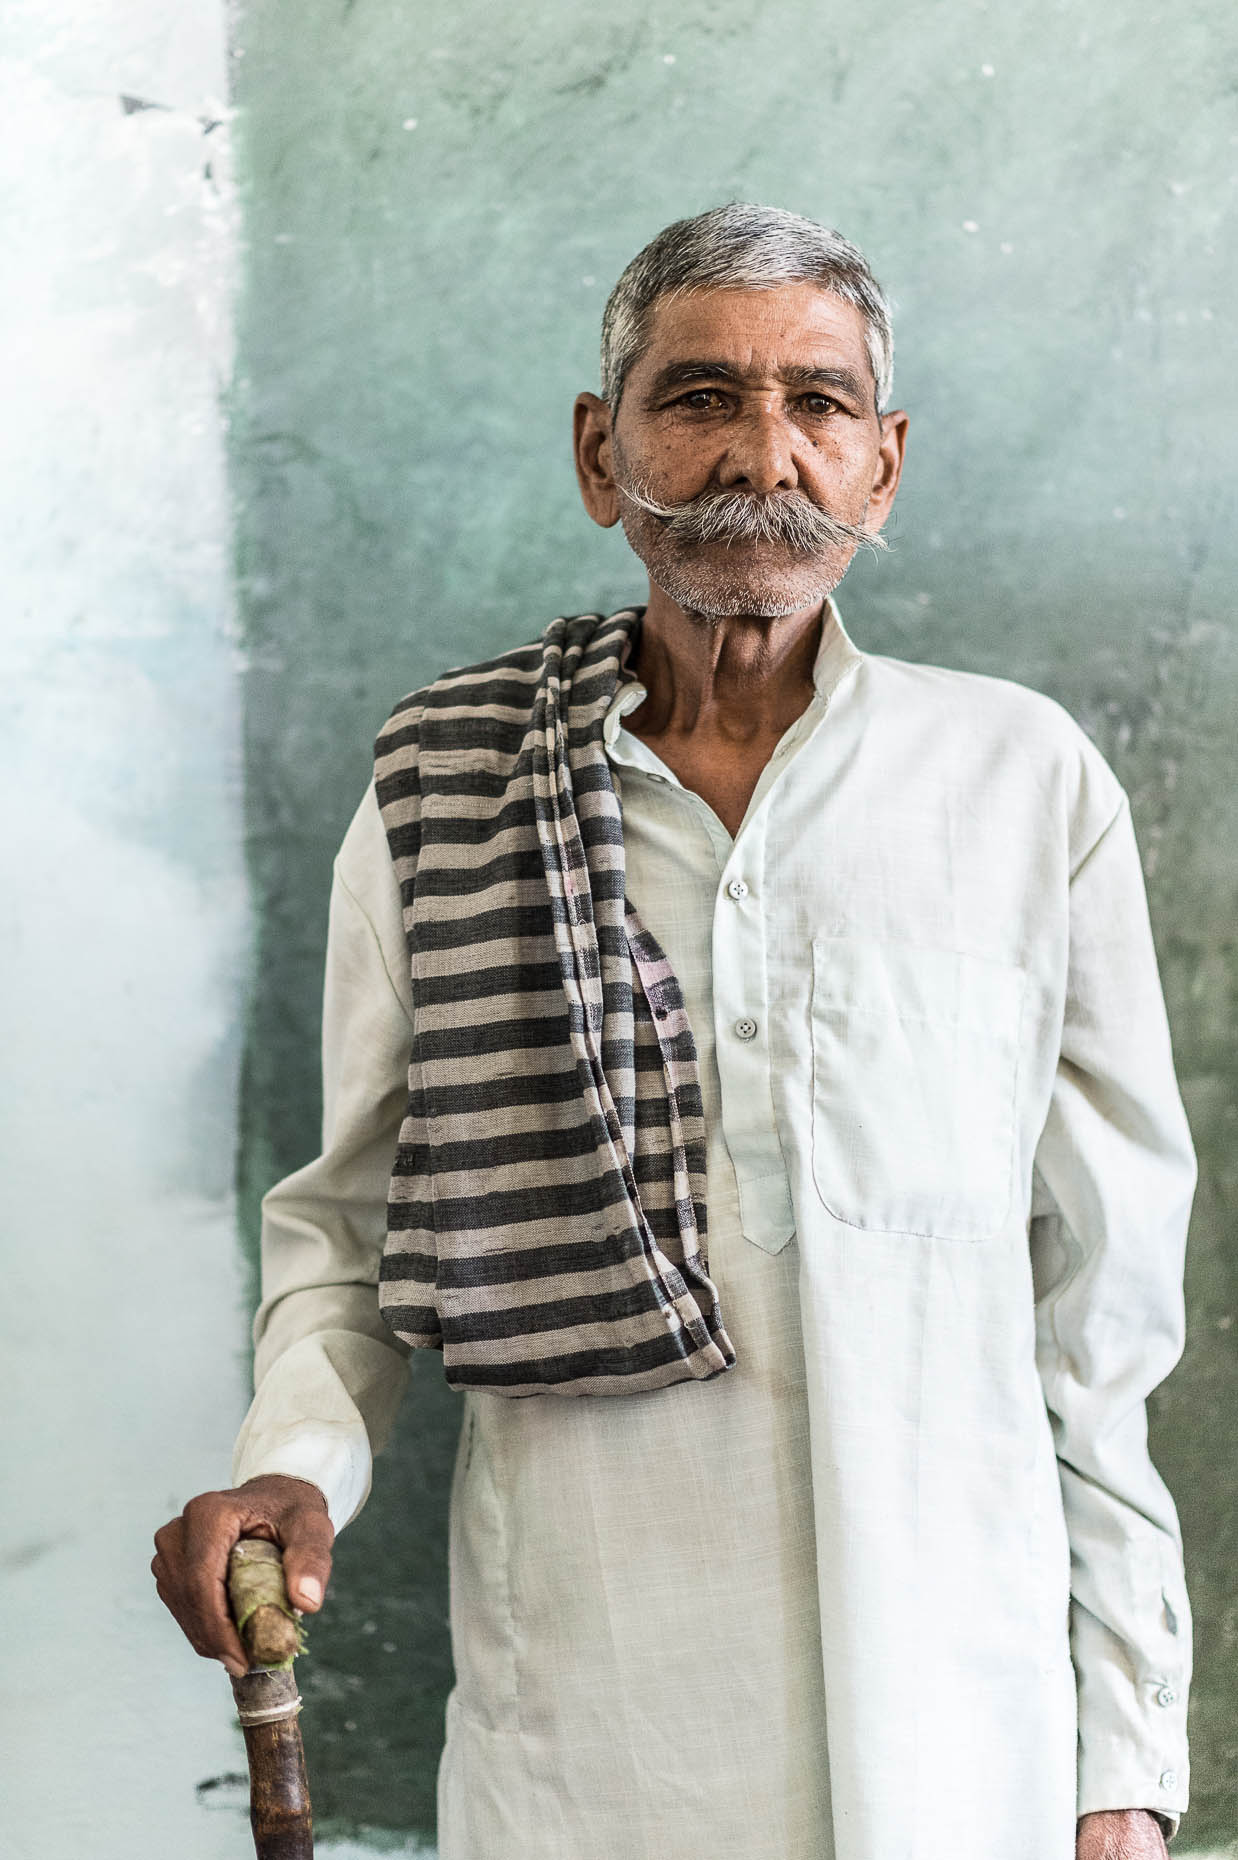 Portrait-elderly-man-India-at-clinic